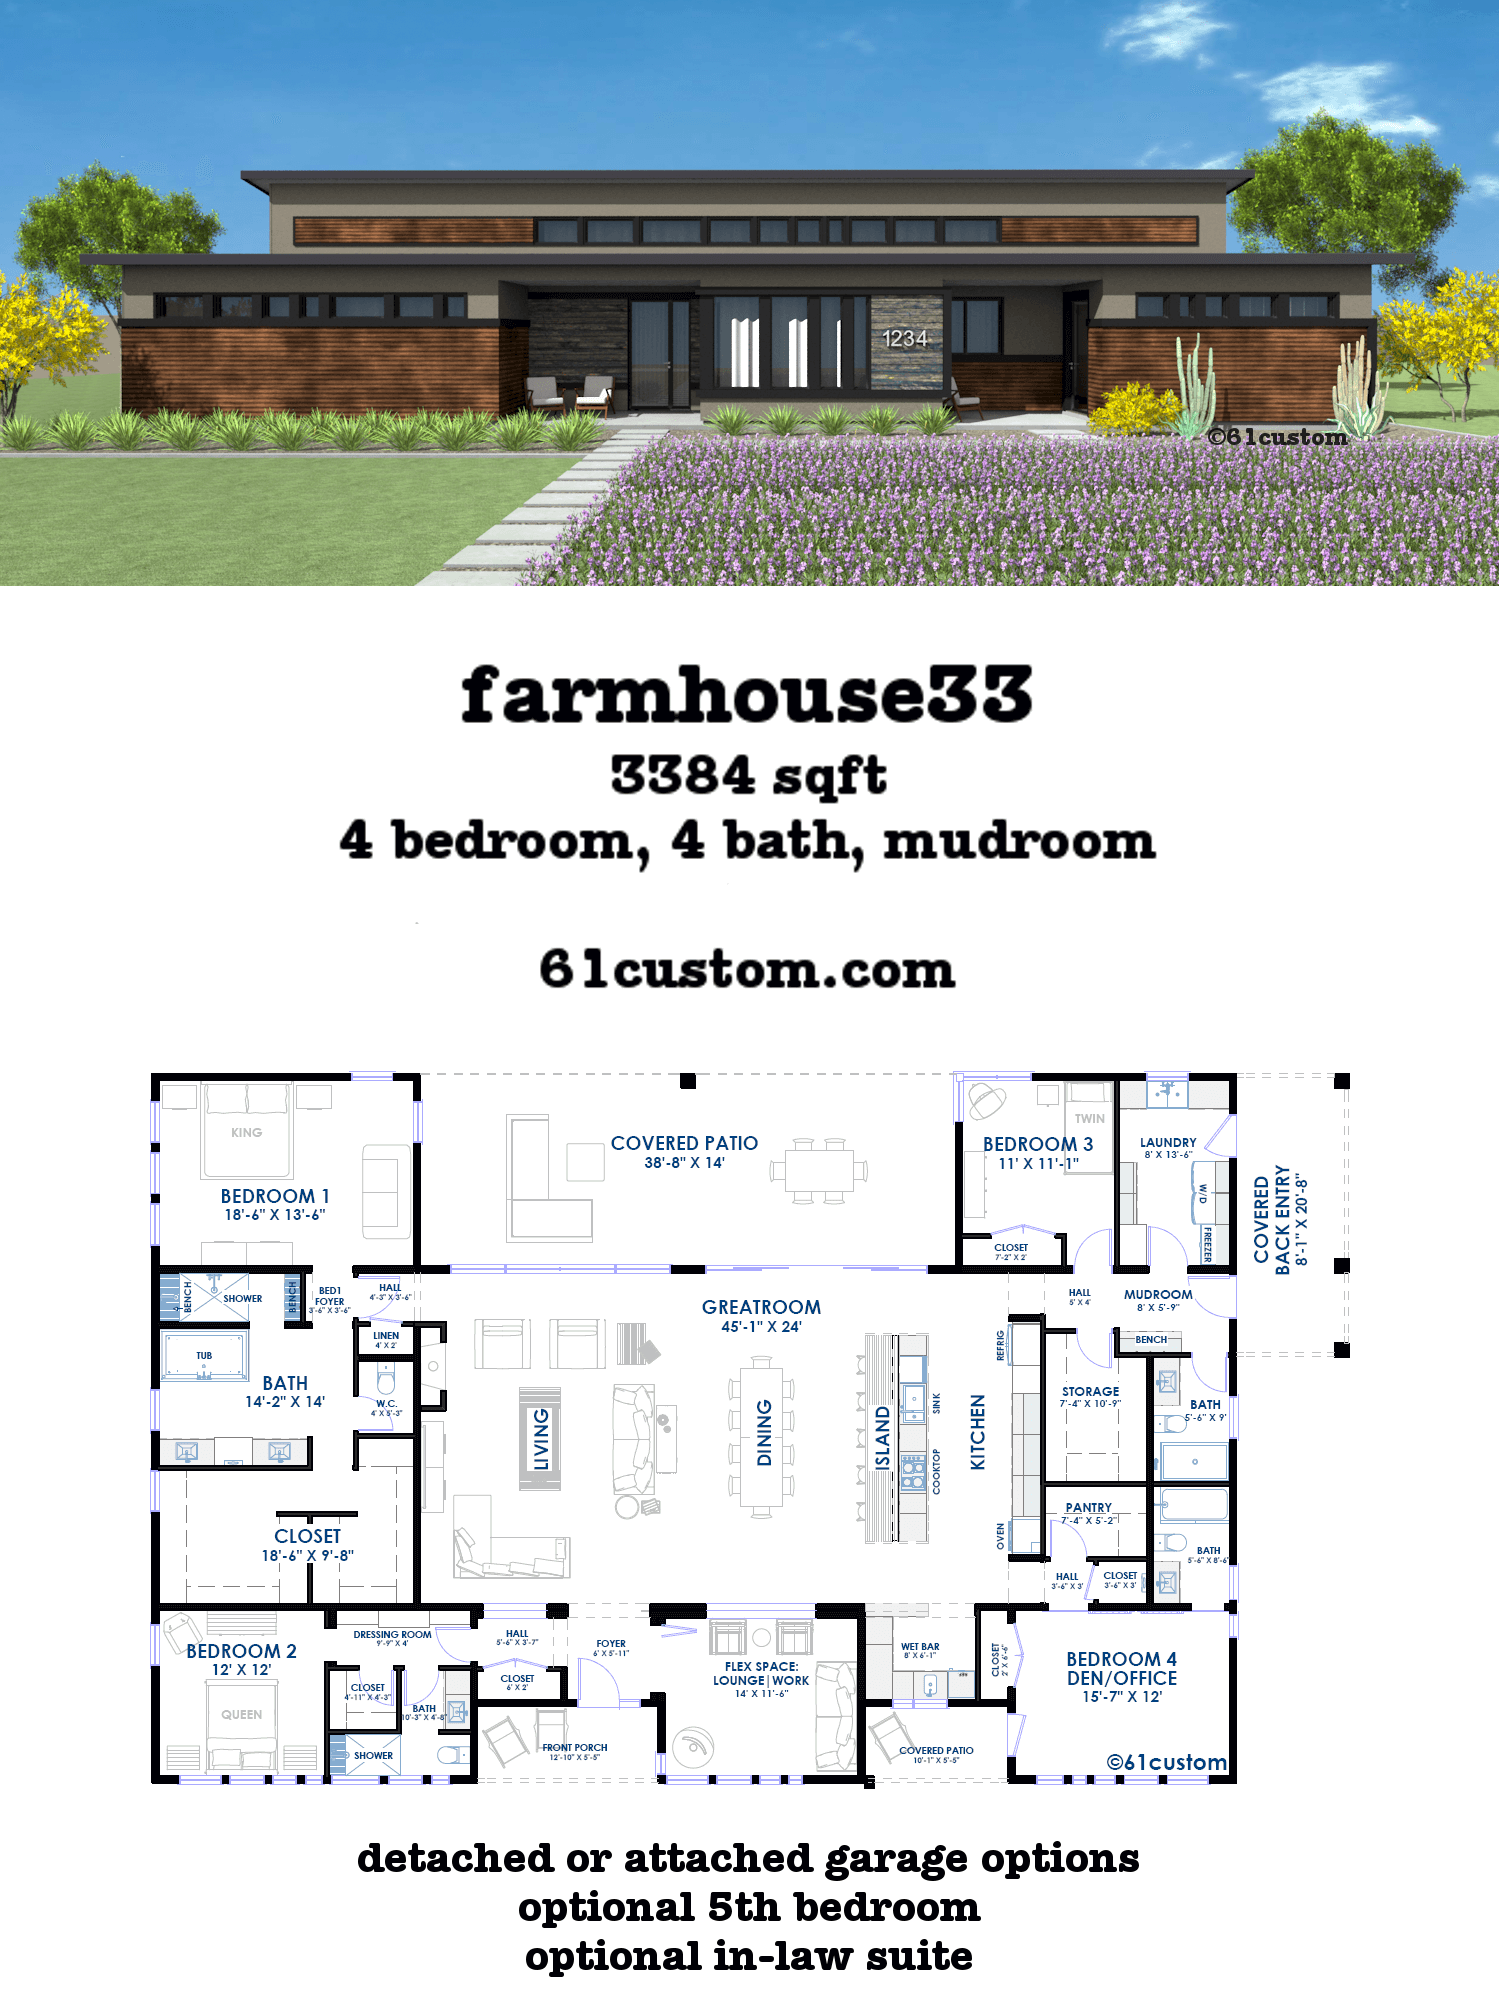 Farmhouse Design Plans | Farmhouse33 Modern Farmhouse Plan 61custom Contemporary Modern